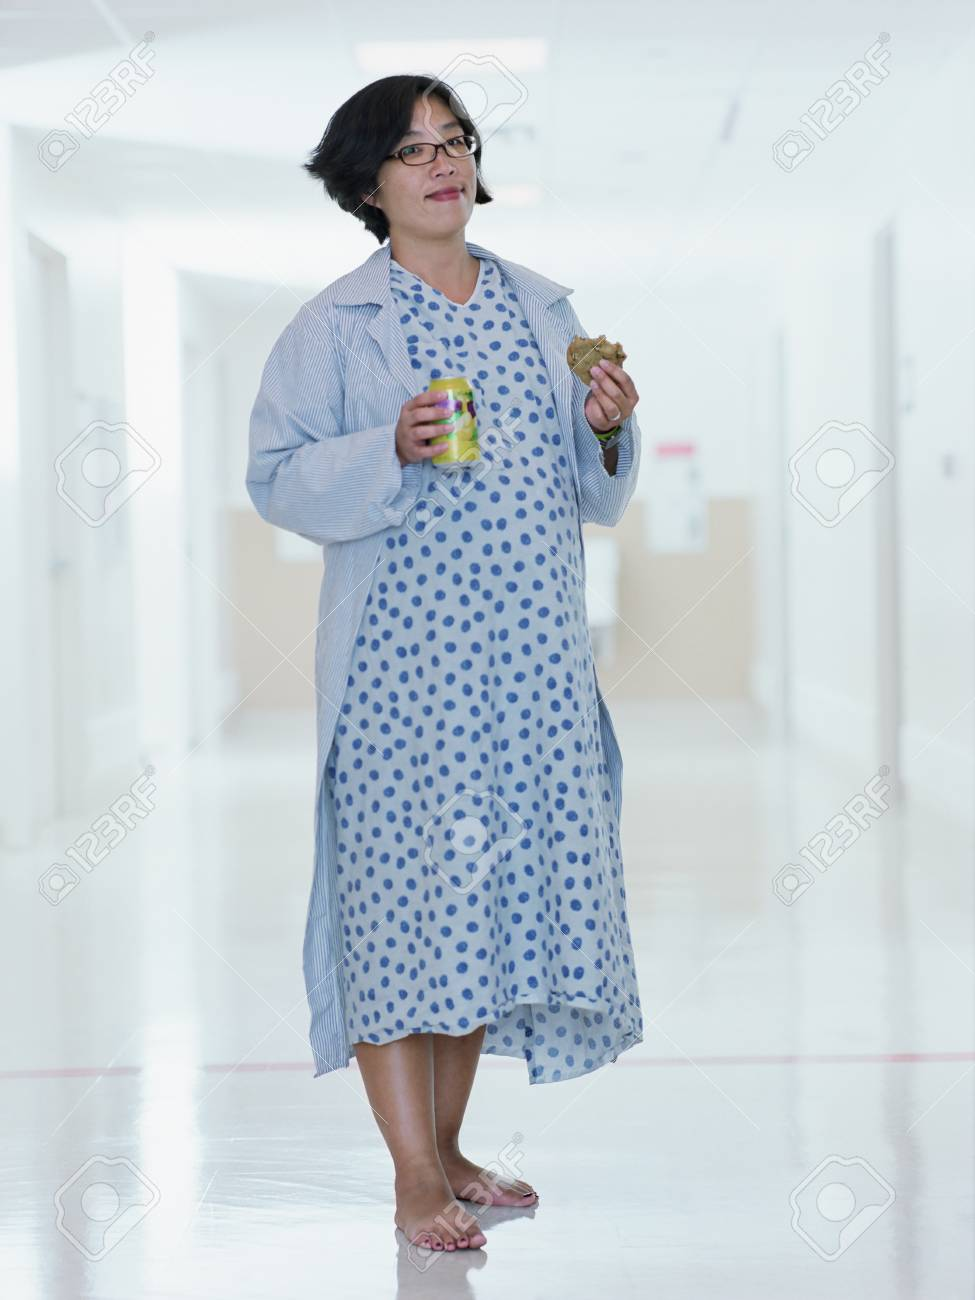 Pregnant Asian Woman In Hospital Gown Stock Photo, Picture And ...